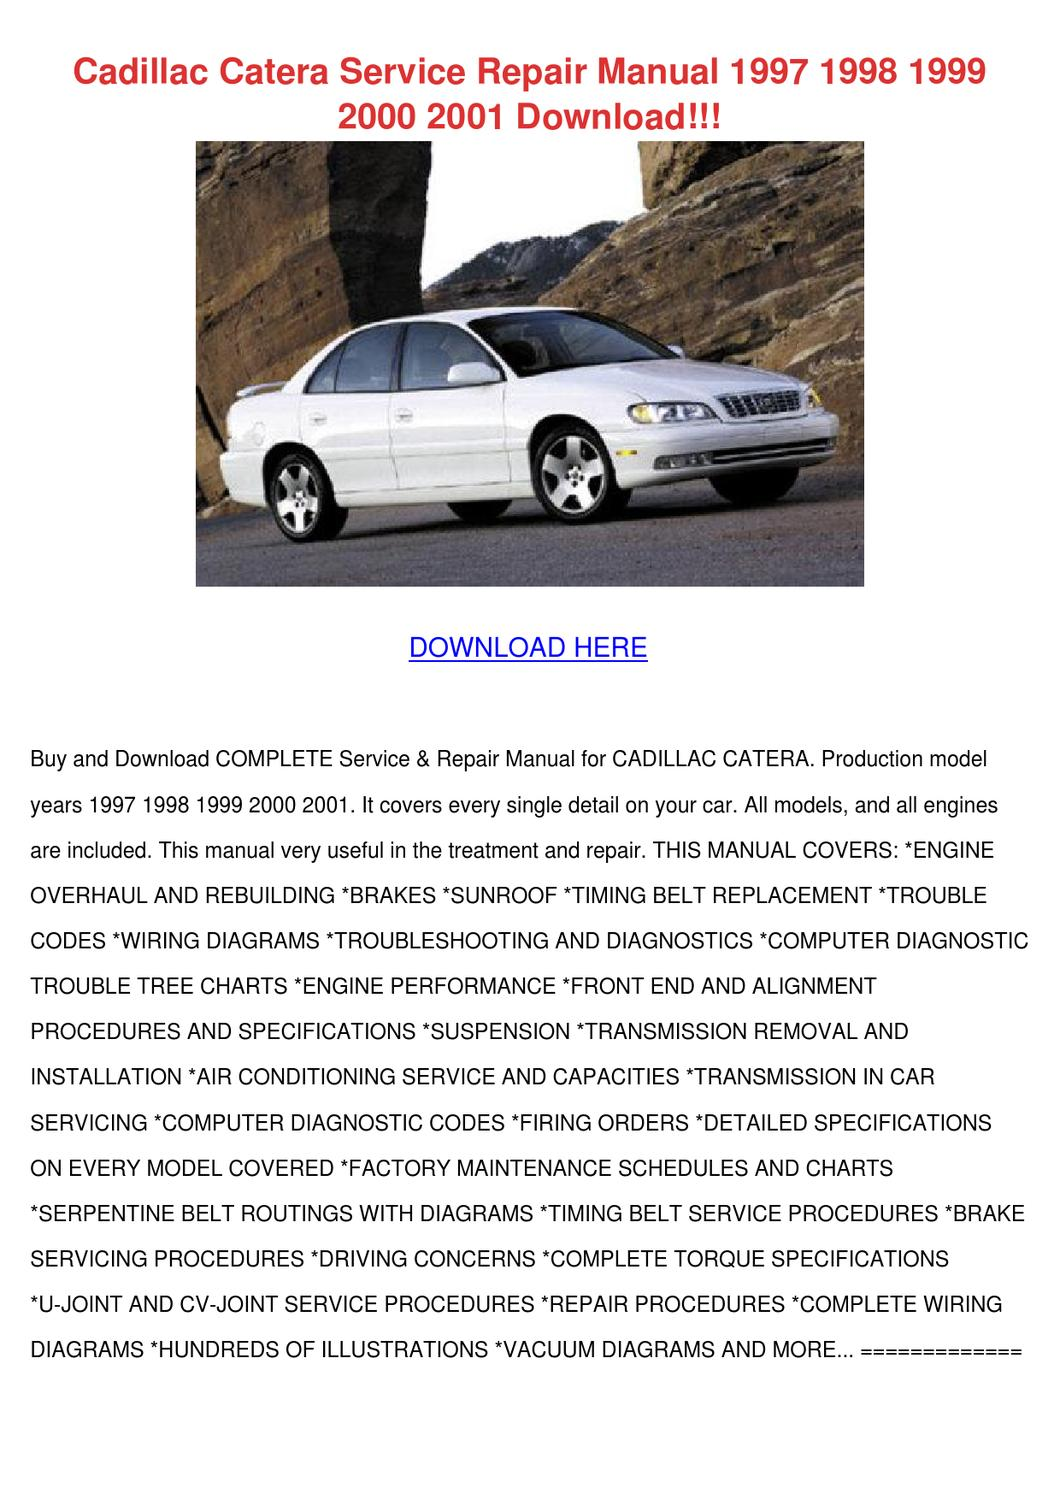 2015 Cadillac Catera Owners Manual 1998 Engine Diagram Service Repair 1997 19 By Lovielemons Issuu Rh Com Cimarron Srx